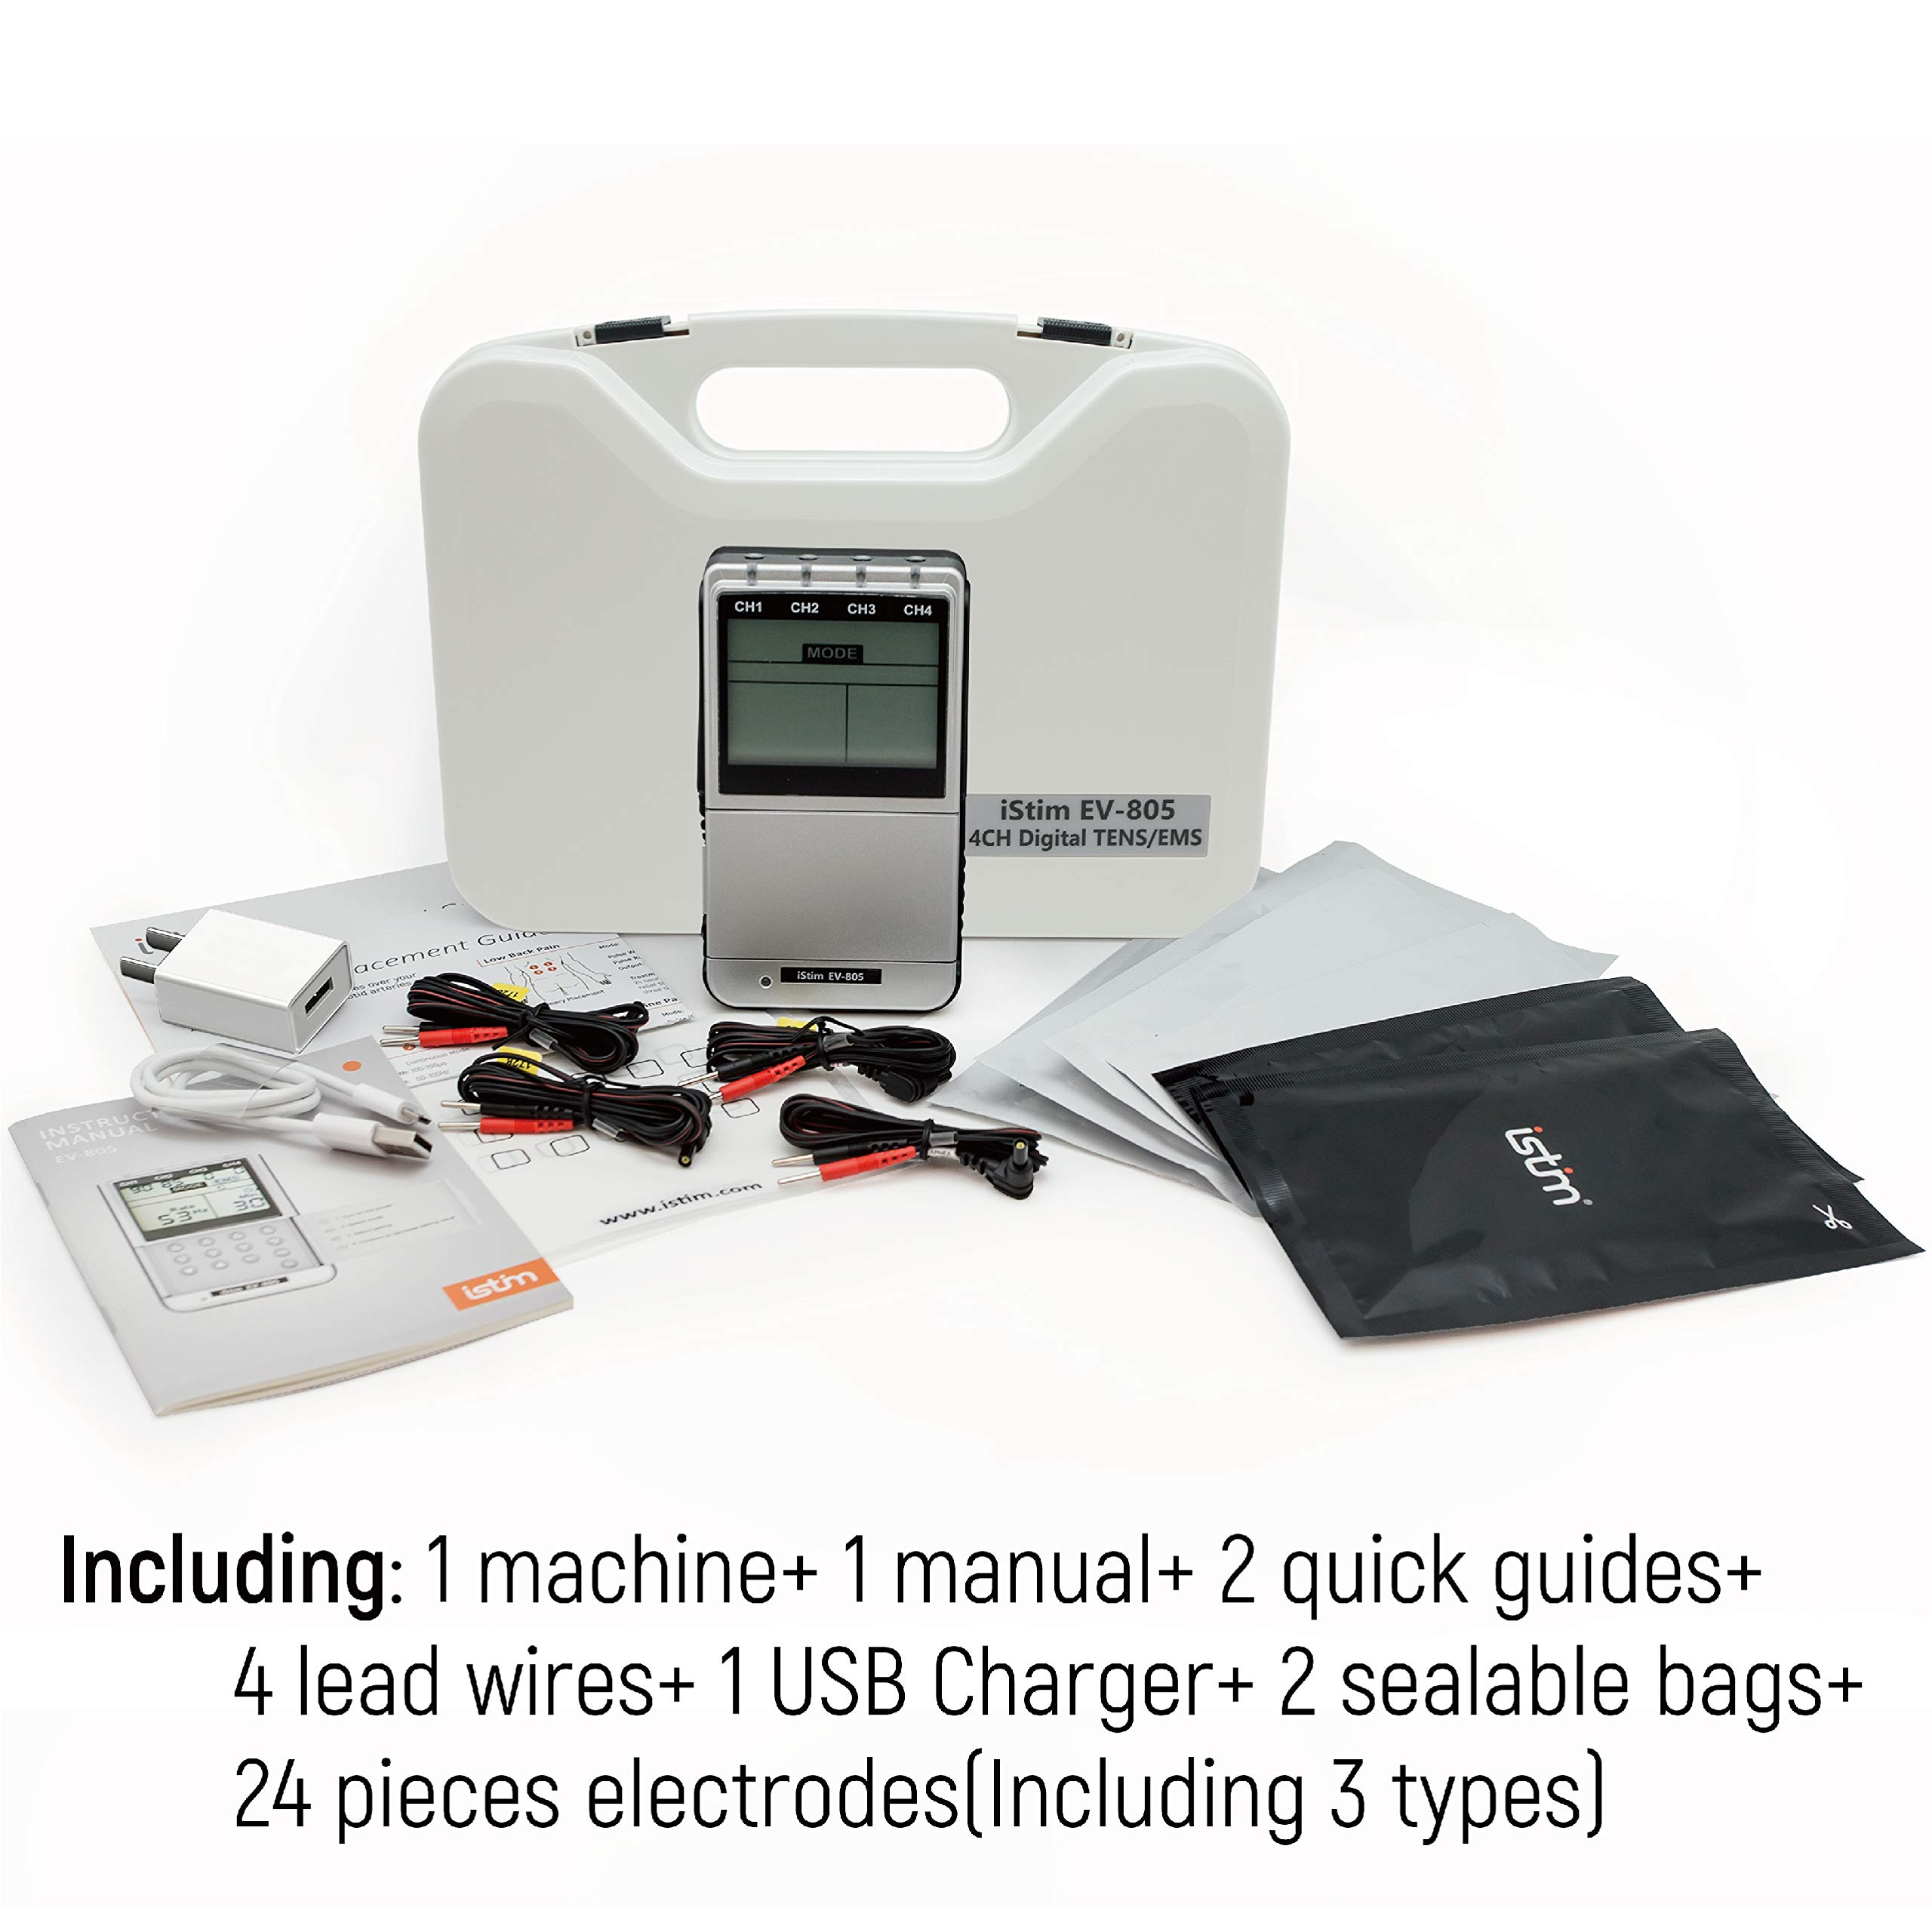 iSTIM EV-805 TENS EMS 4 Channel Rechargeable Combo Machine Unit - Muscle Stimulator + Back Pain Relief and Management- 24 Programs/Backlit (Including Electrodes Pads) by iSTIM (Image #5)